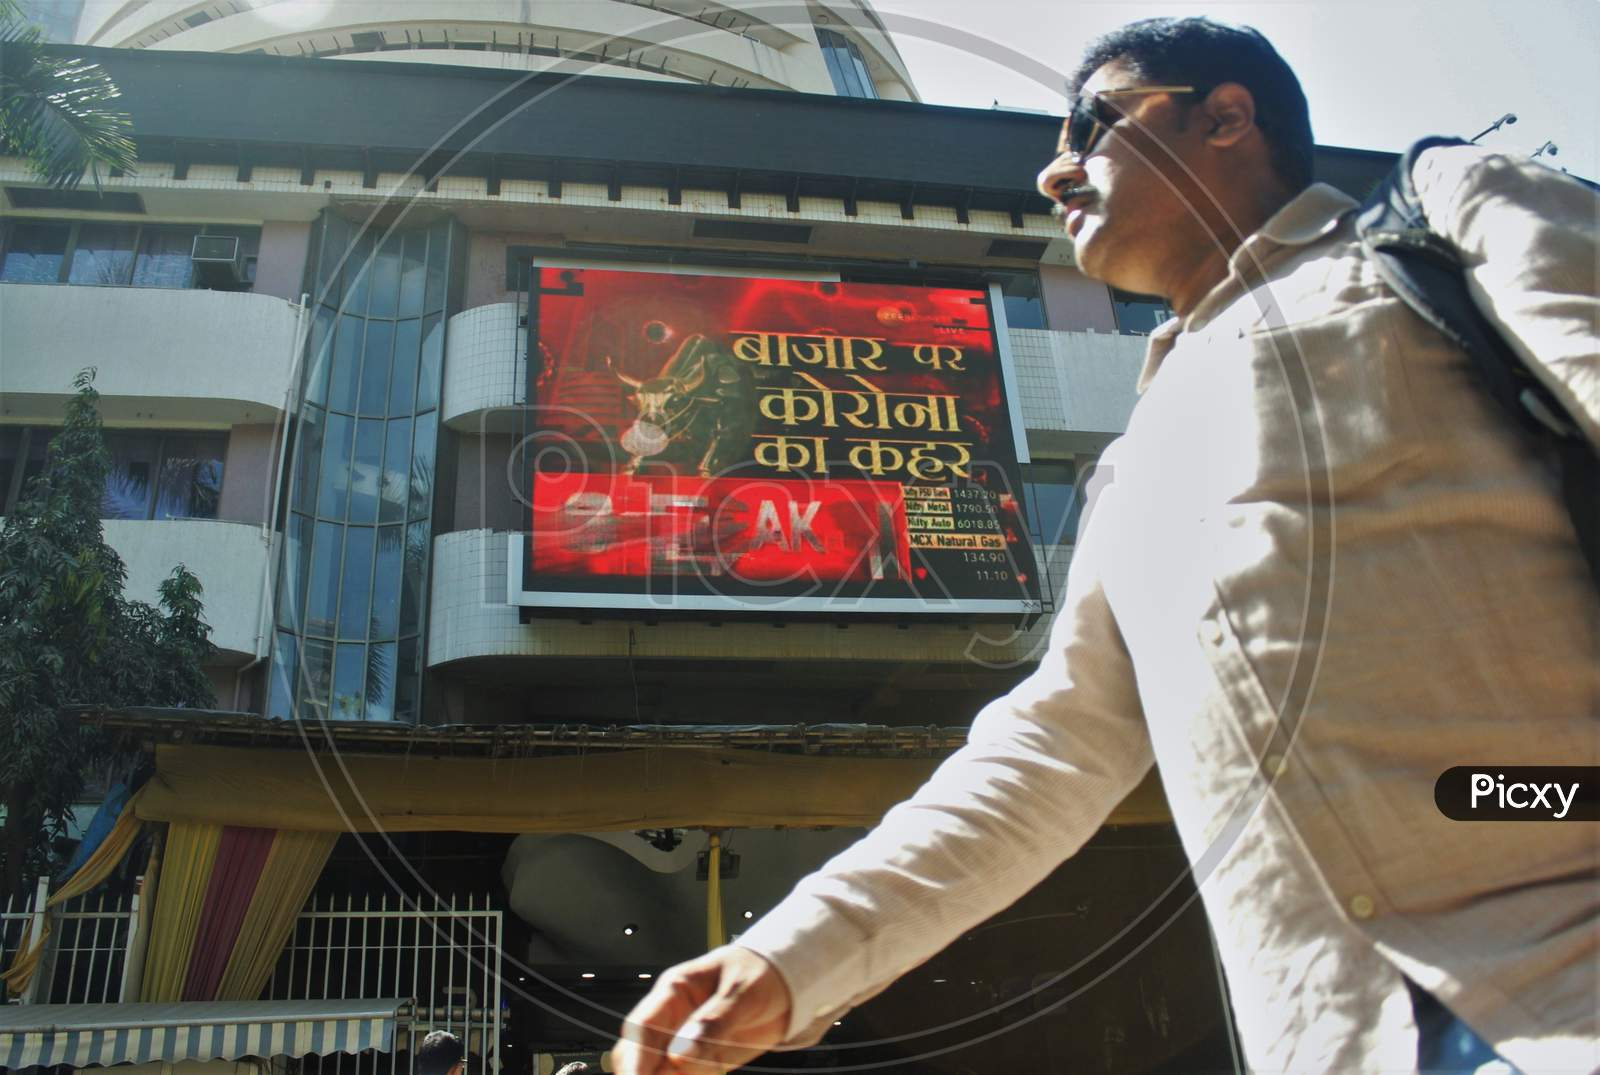 A man walks past a screen displaying the current market situation amid coronavirus outbreak, on the facade of the Bombay Stock Exchange (BSE) , in Mumbai, India, on March 12, 2020.